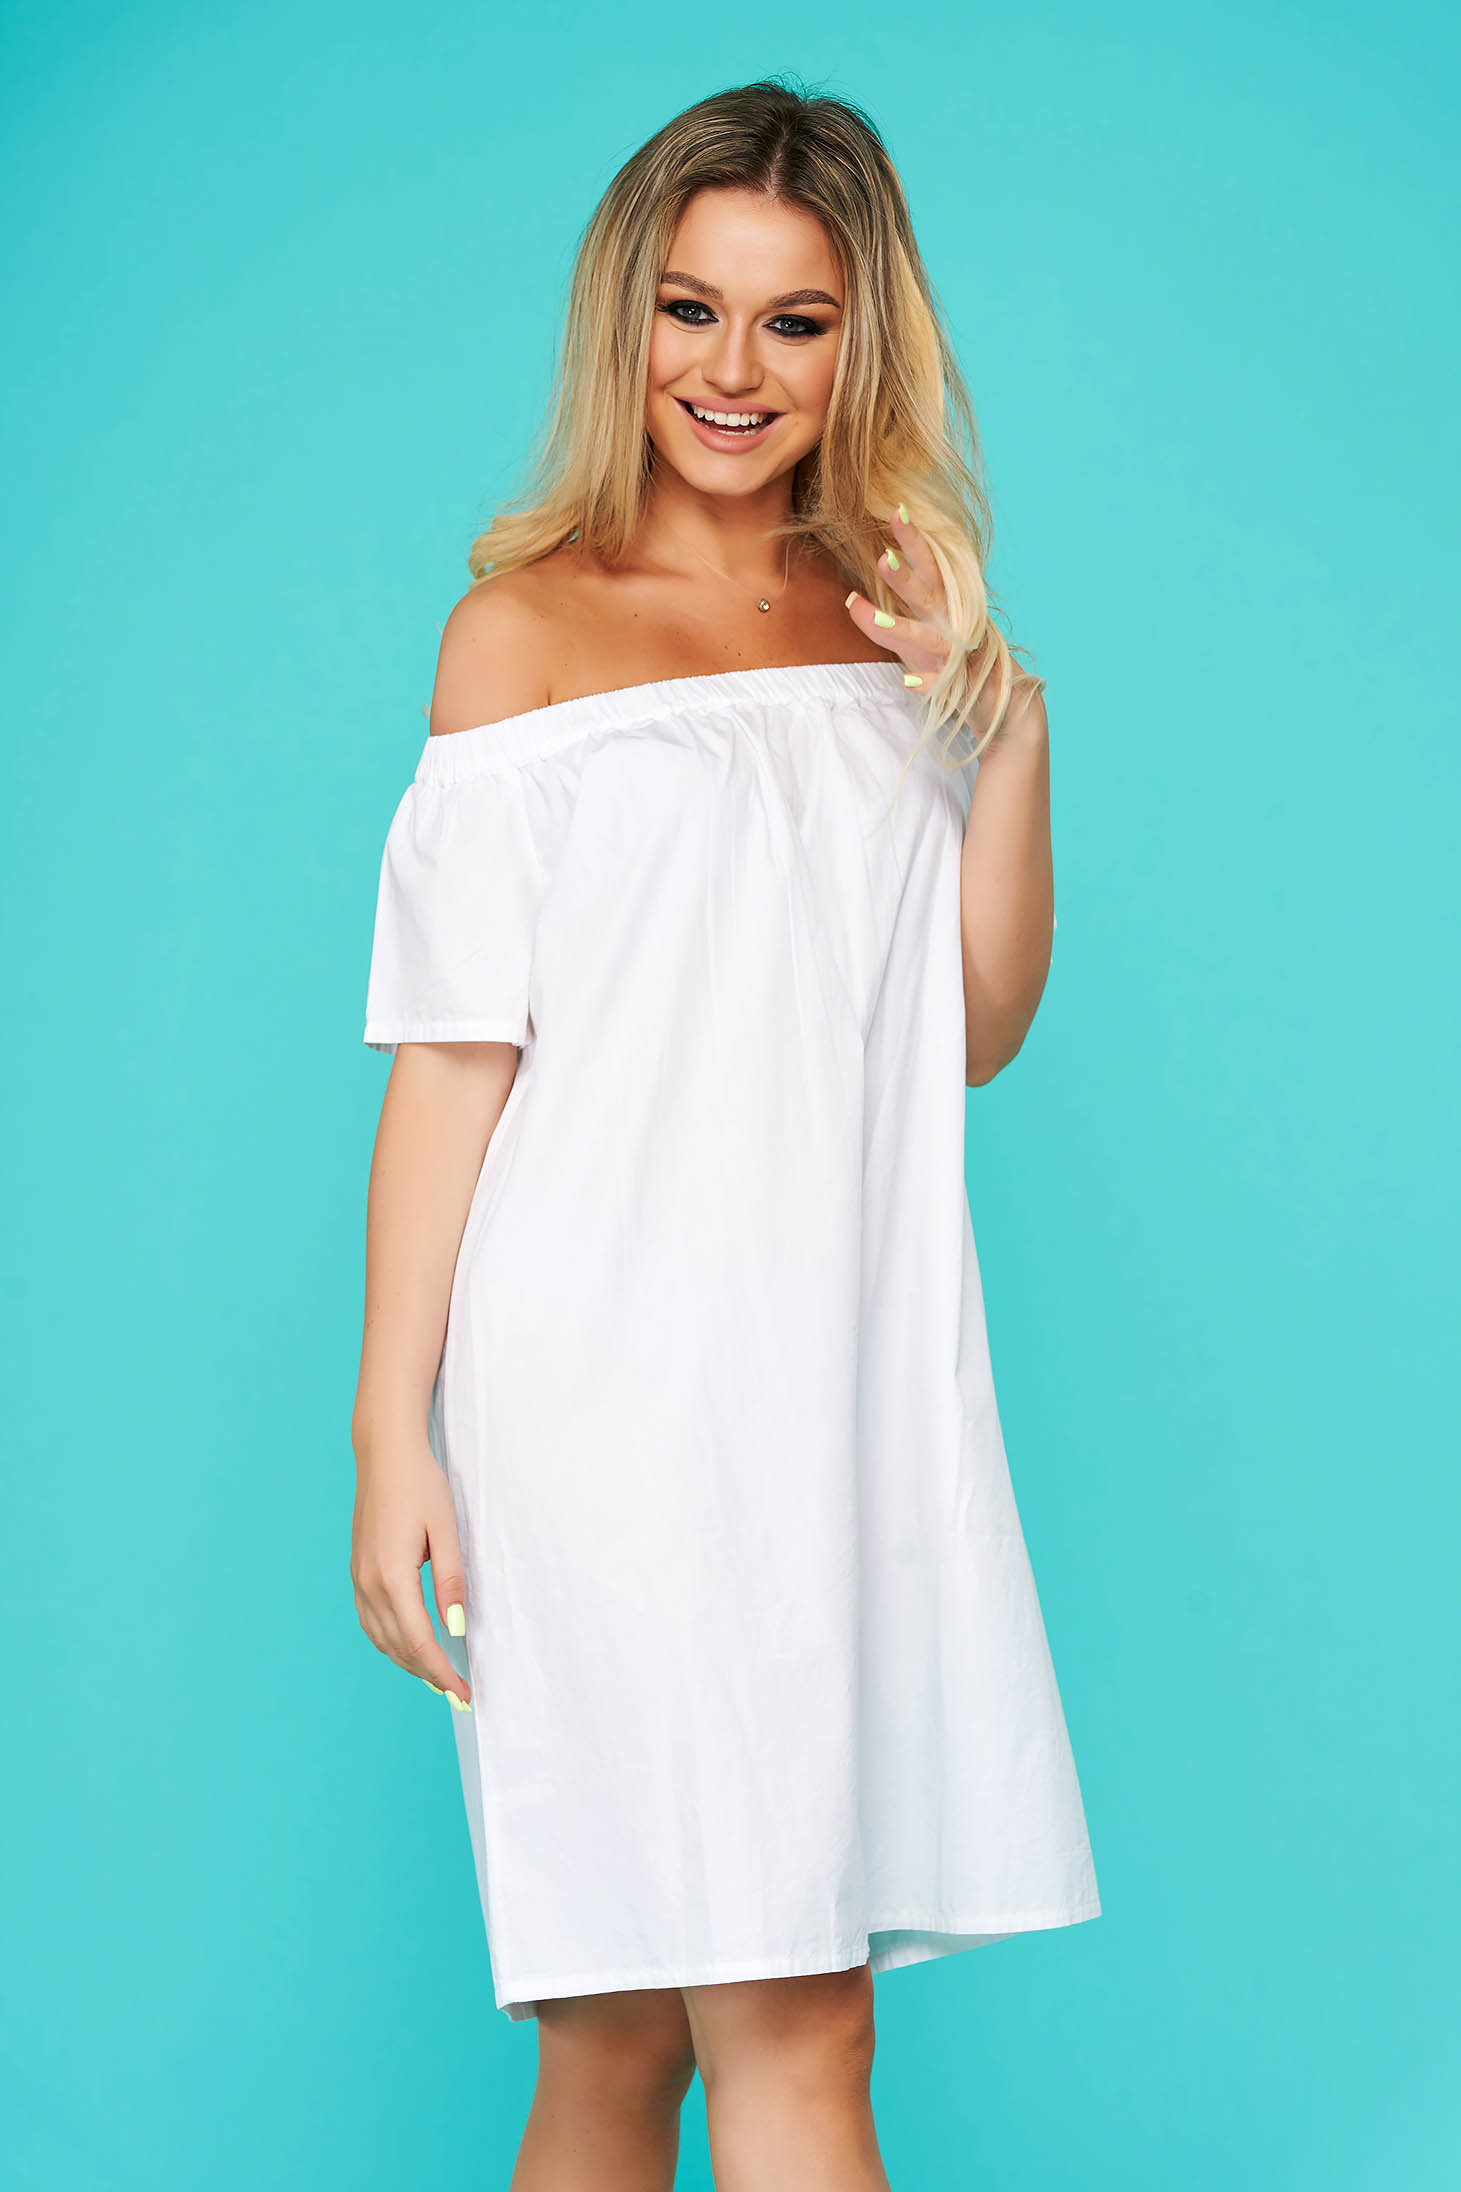 White dress short cut daily cotton naked shoulders